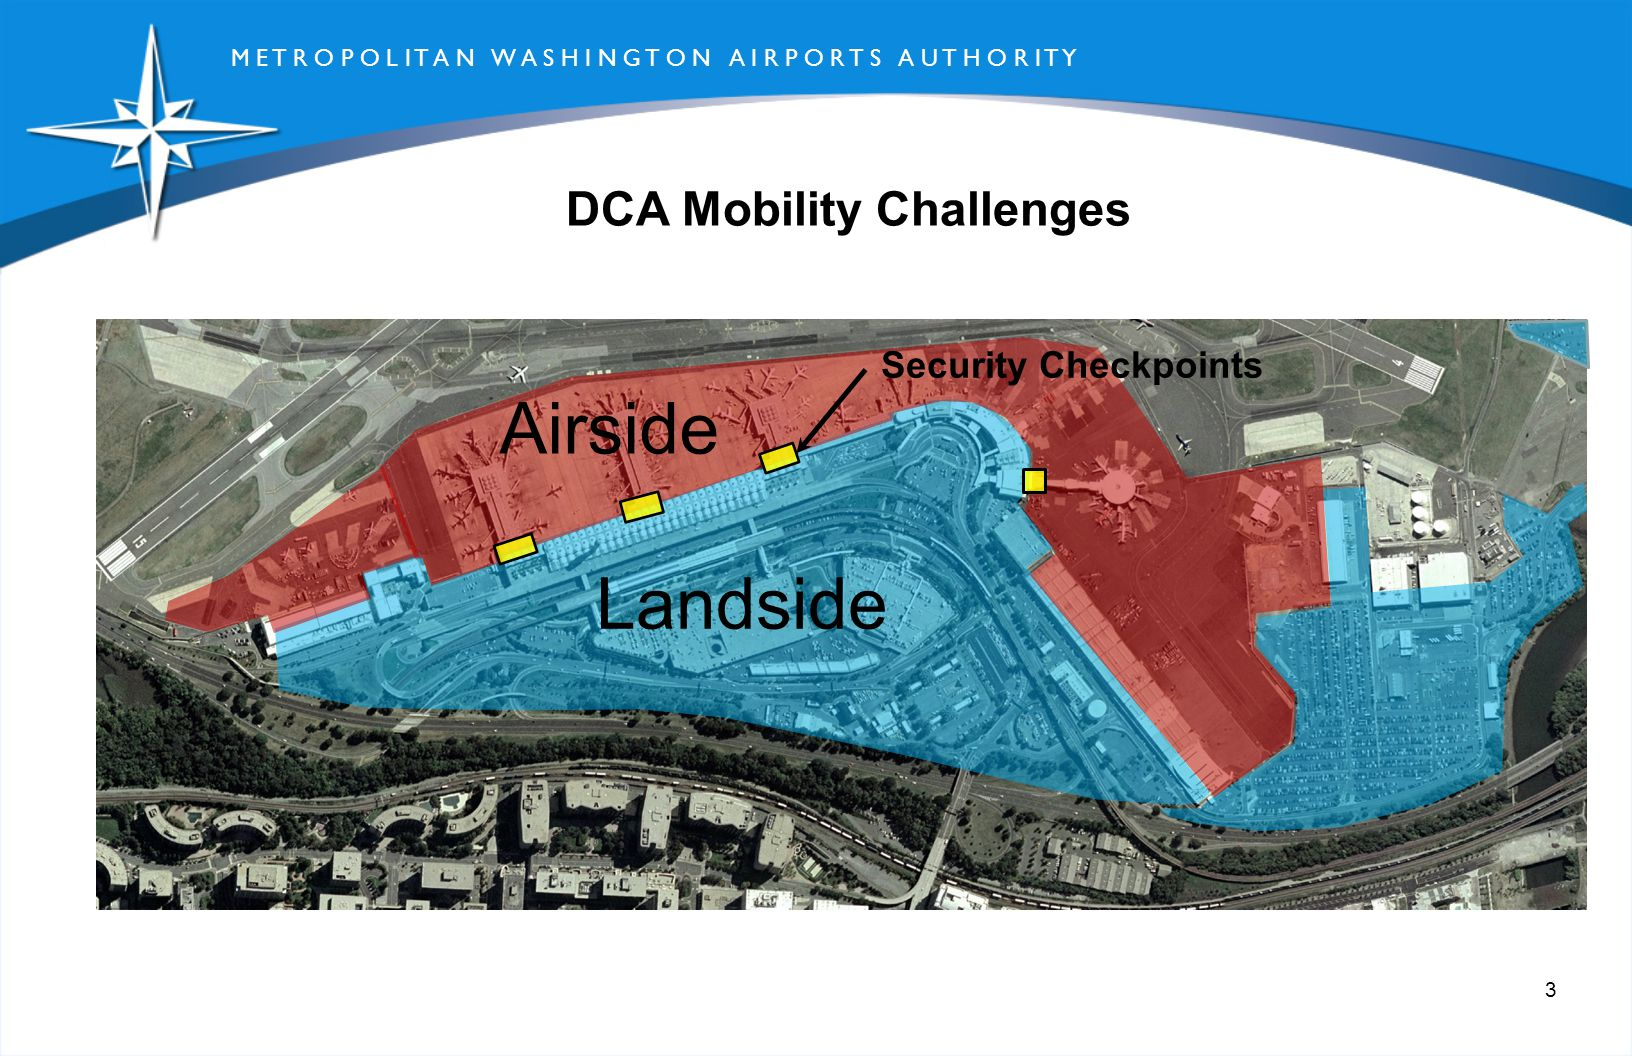 M E T R O P O L I T A N W A S H I N G T O N A I R P O R T S A U T H O R I T Y 3 Landside Airside Security Checkpoints DCA Mobility Challenges